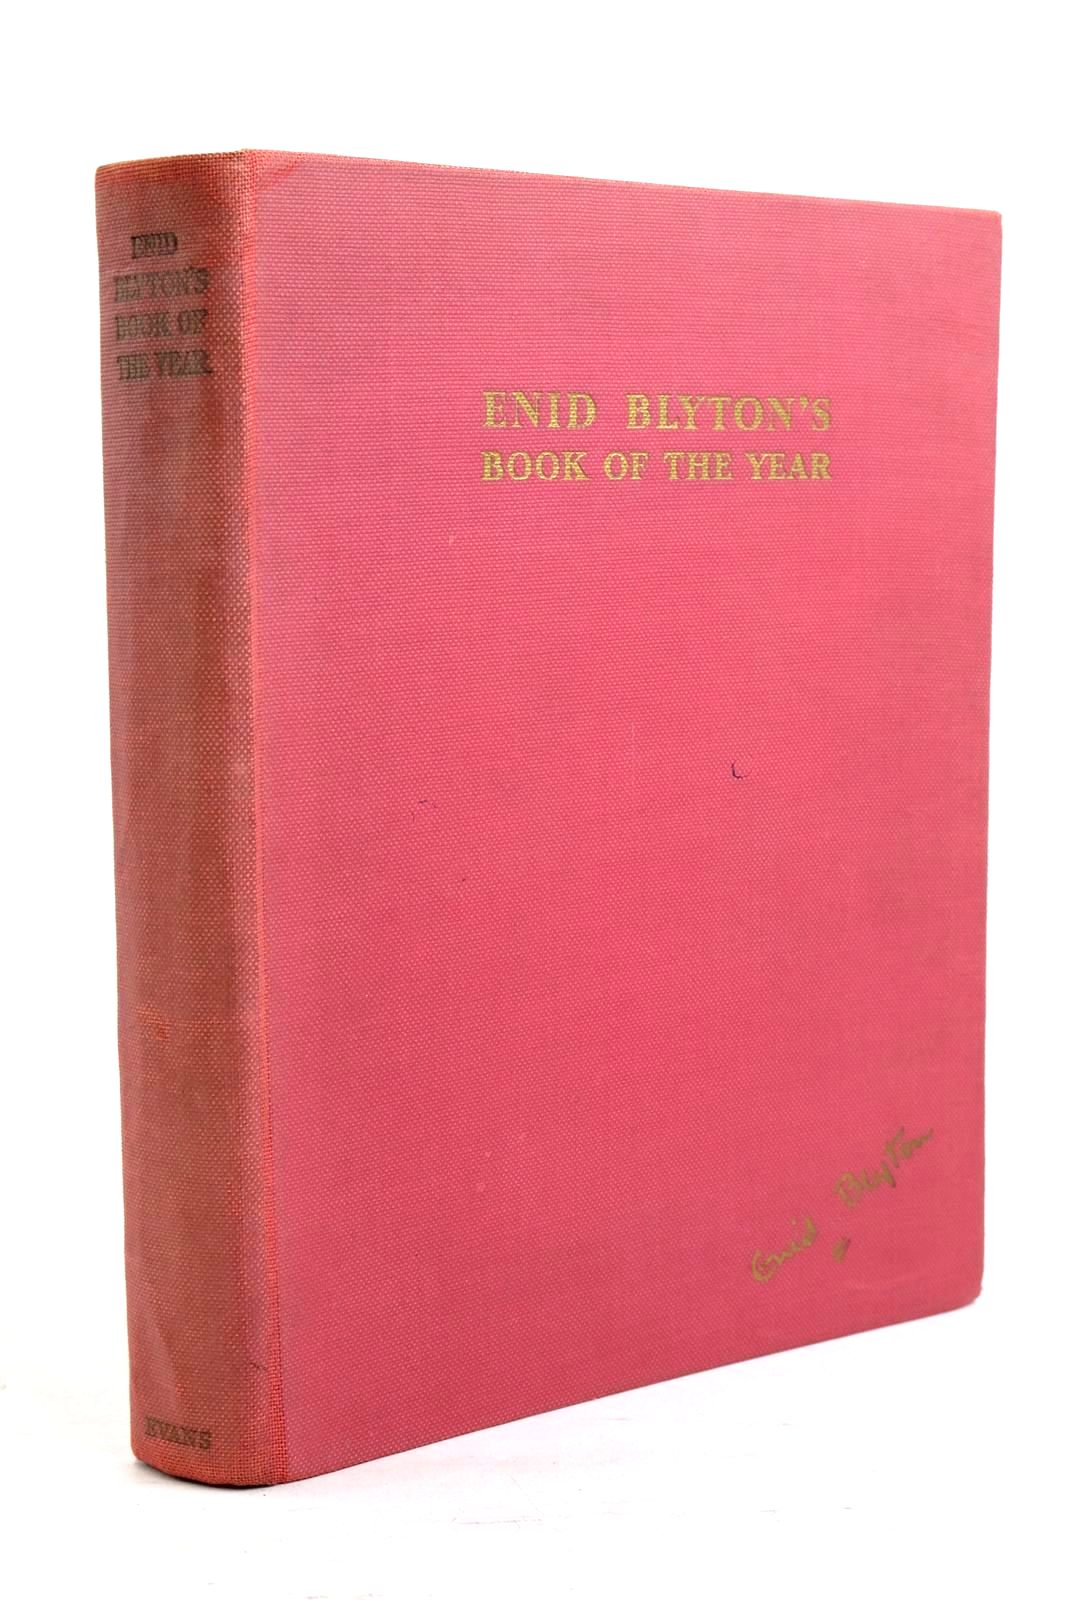 Photo of ENID BLYTON'S BOOK OF THE YEAR- Stock Number: 1320756